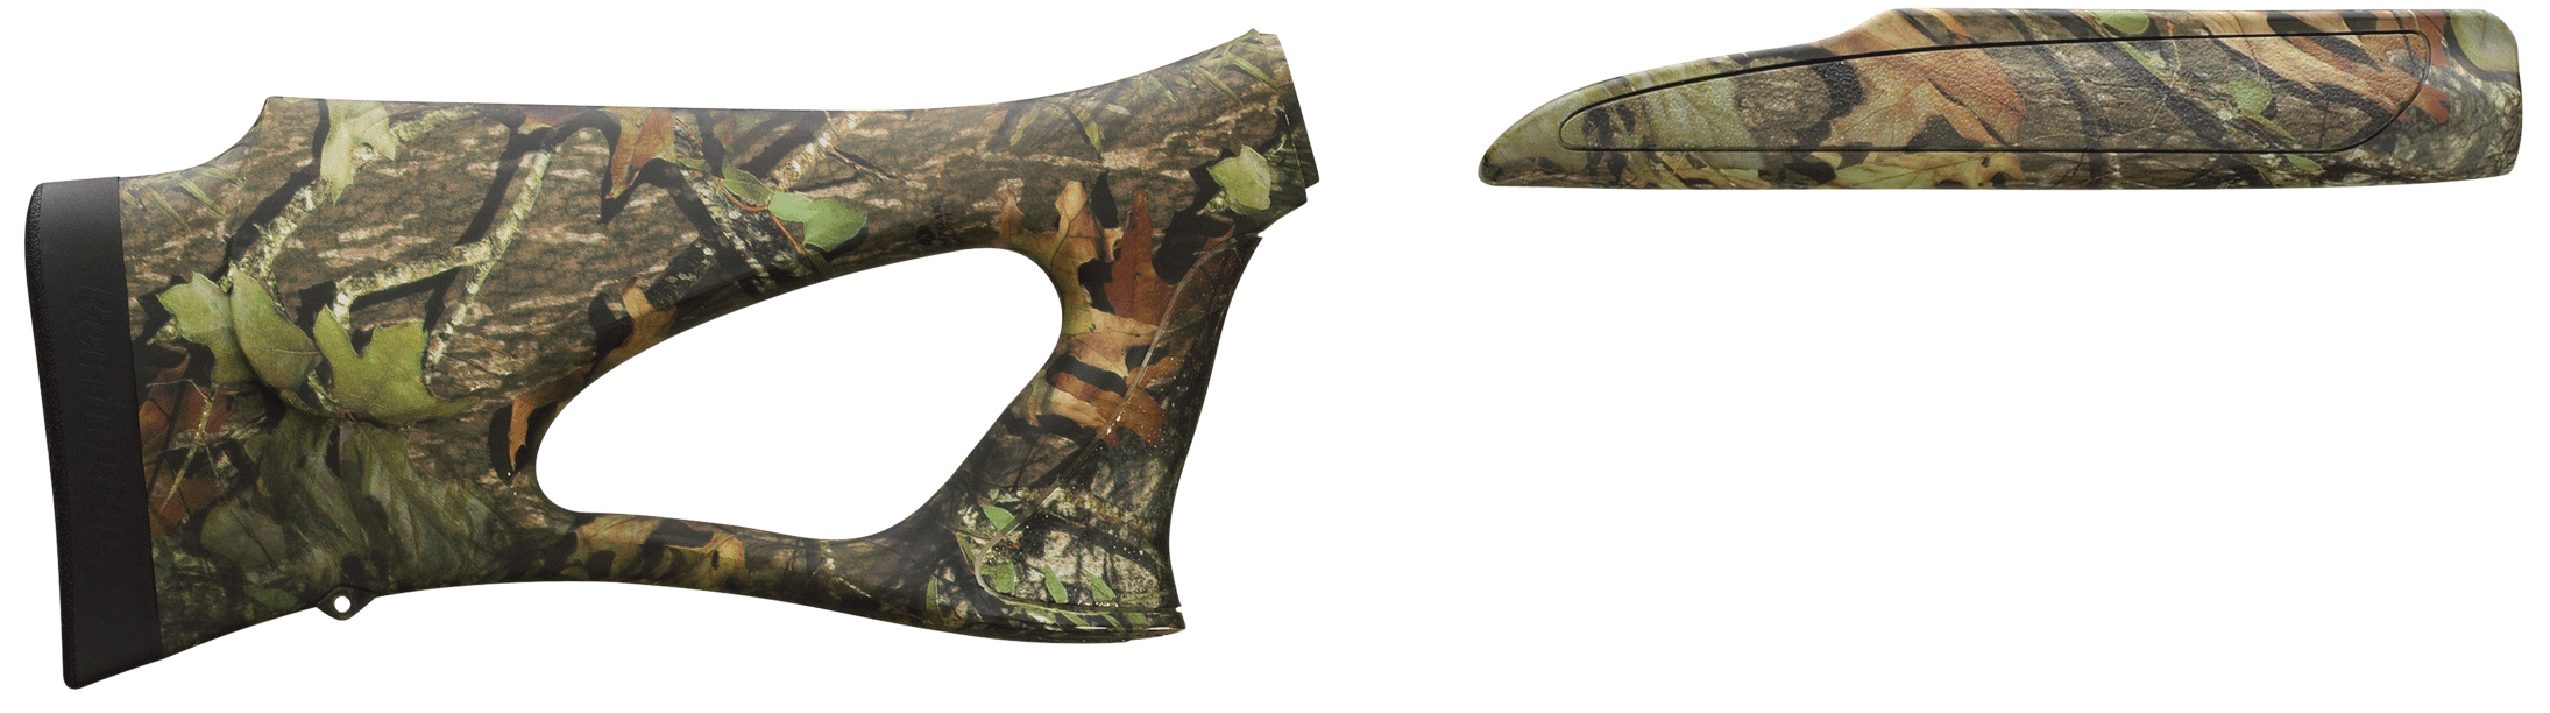 Remington 1187 12 ga SureShot Thumbhole Stock/Forend - Synthetic Realtree APG